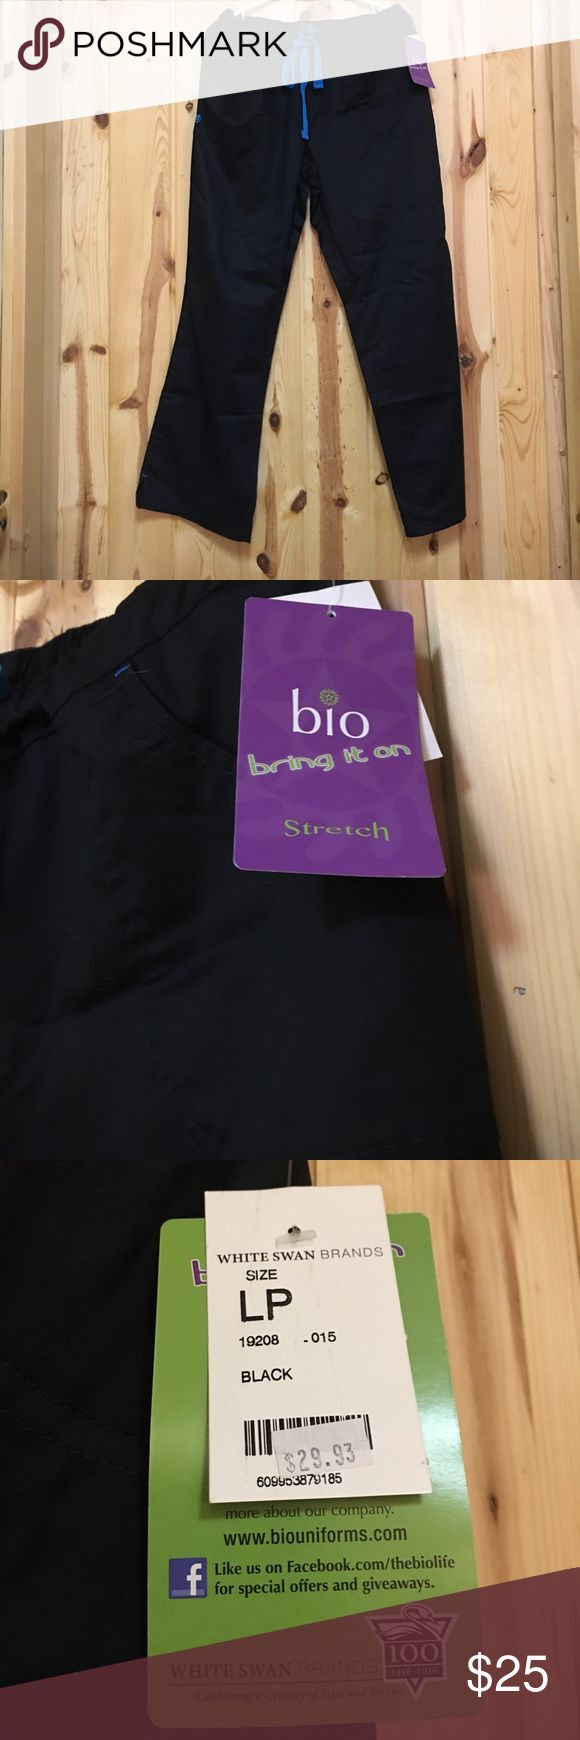 Bio Scrub Pant Large Petite Black /blue ties NWT Bio Scrub Pant Large Petite Black /blue ties NWT  Pant is 55% Cotton 42% Polyester and 3% Spandex  Pant has 2 Side Pockets and one Back Pocket  Elastic Waist in back Very Comfy and Stylish Bio Scrubs Pants